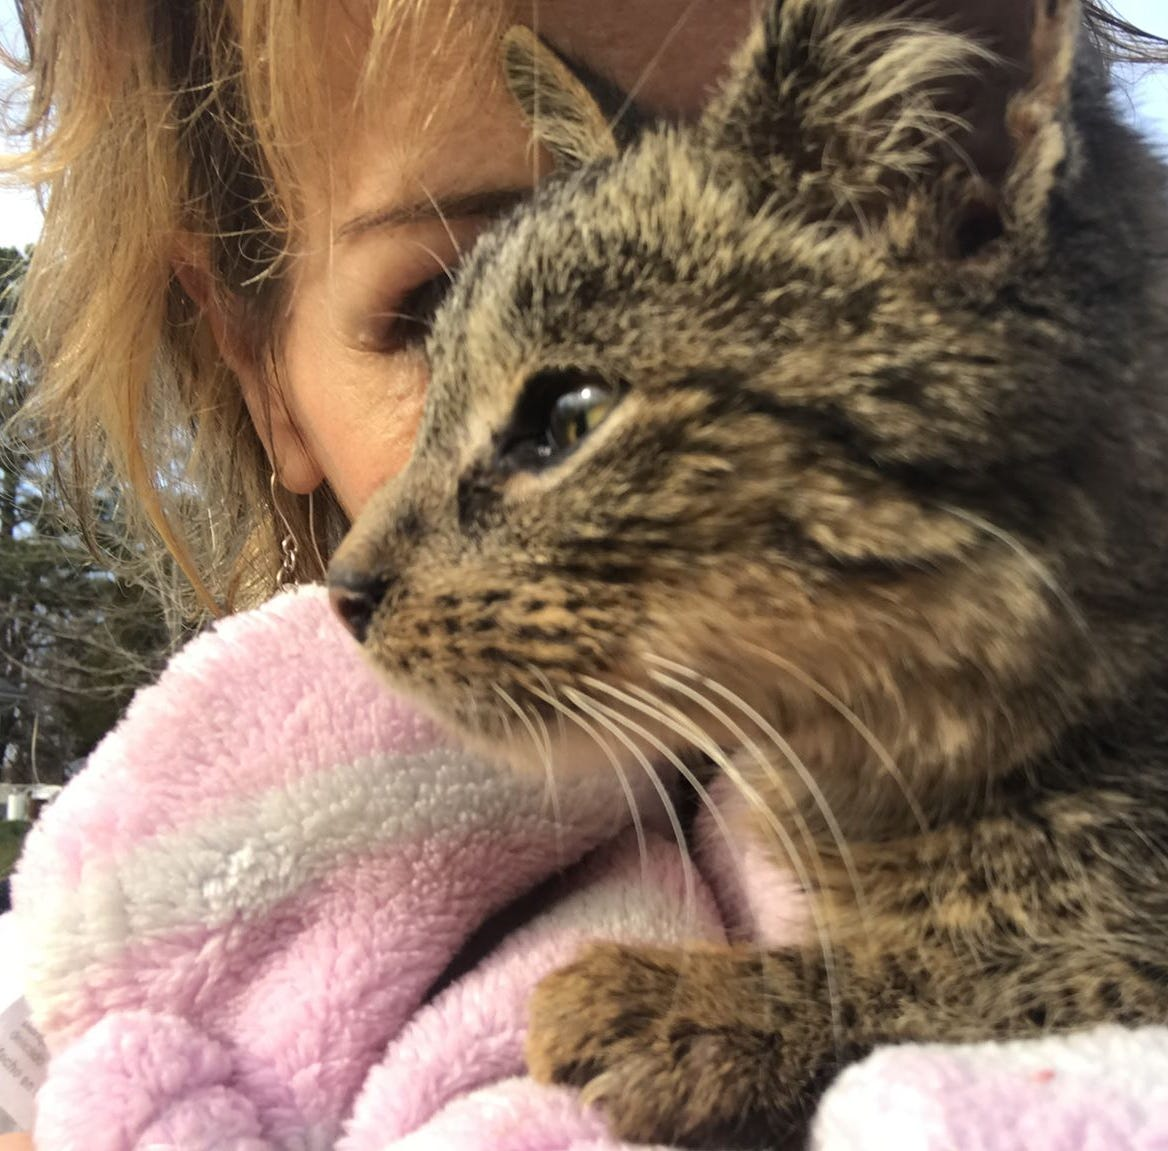 Kitten rescued from floods gets second chance but has difficult journey ahead